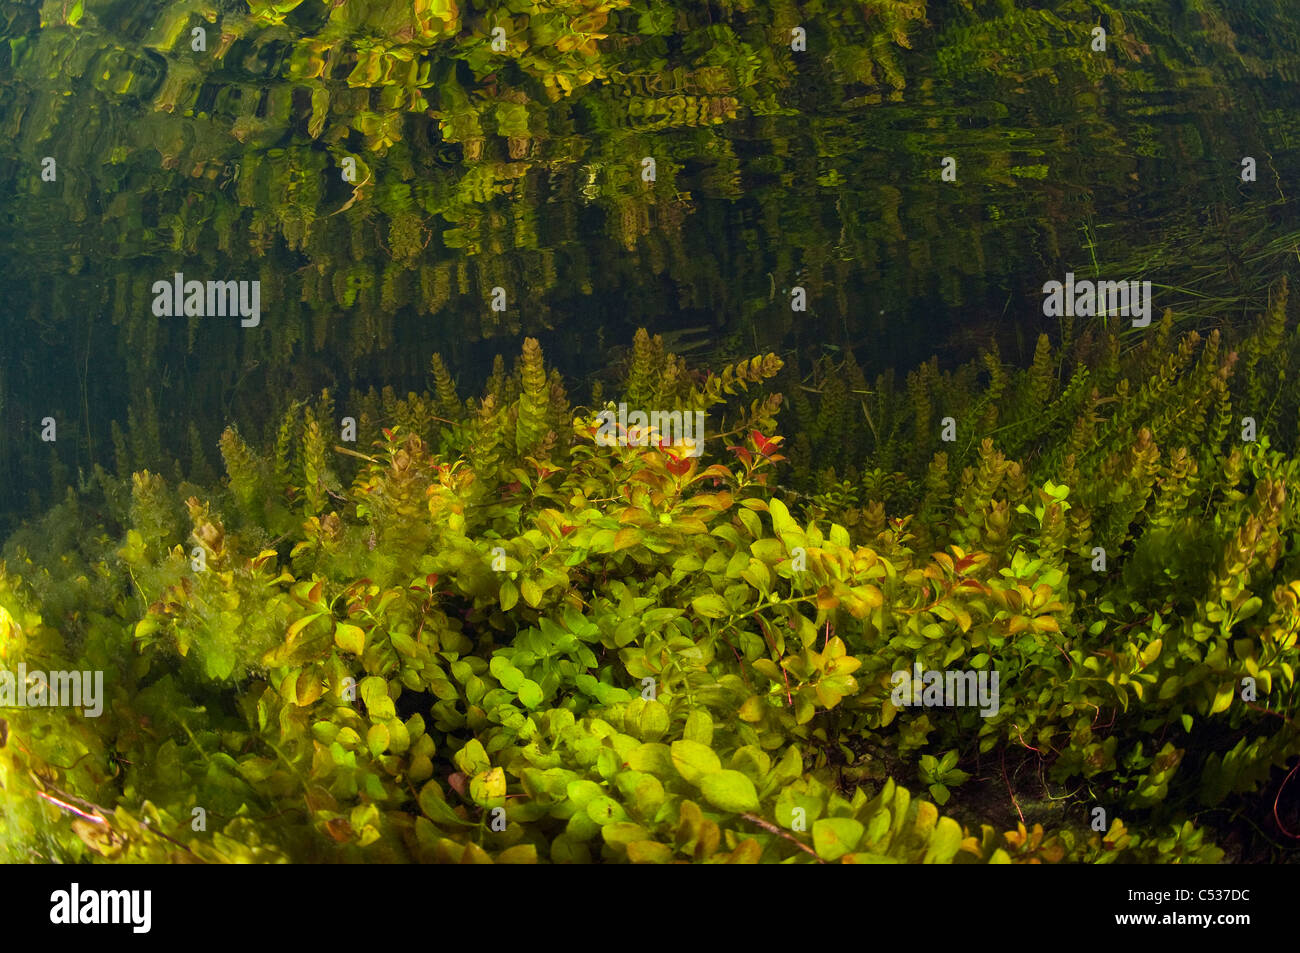 Underwater plants thrive in the crystal clear water flooding cypress forests in the Florida Everglades. - Stock Image